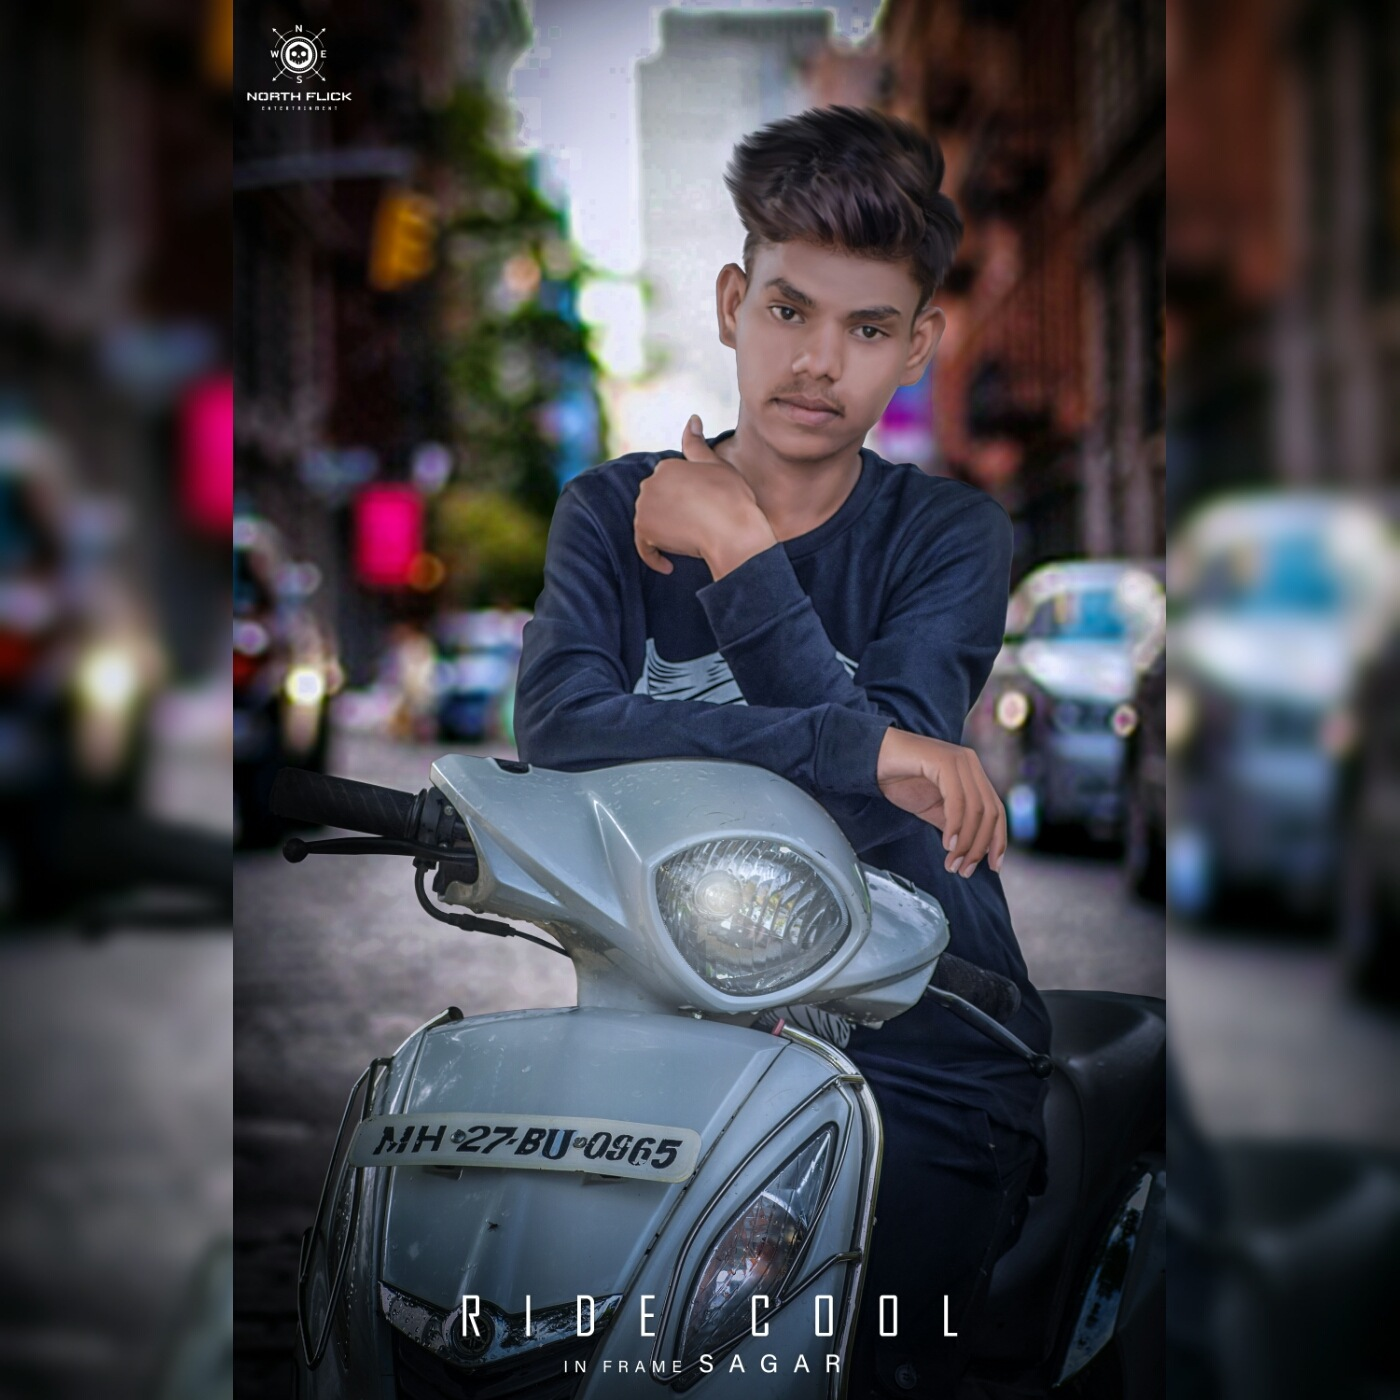 Ride Cool, Play Cool..!!  by North Flick